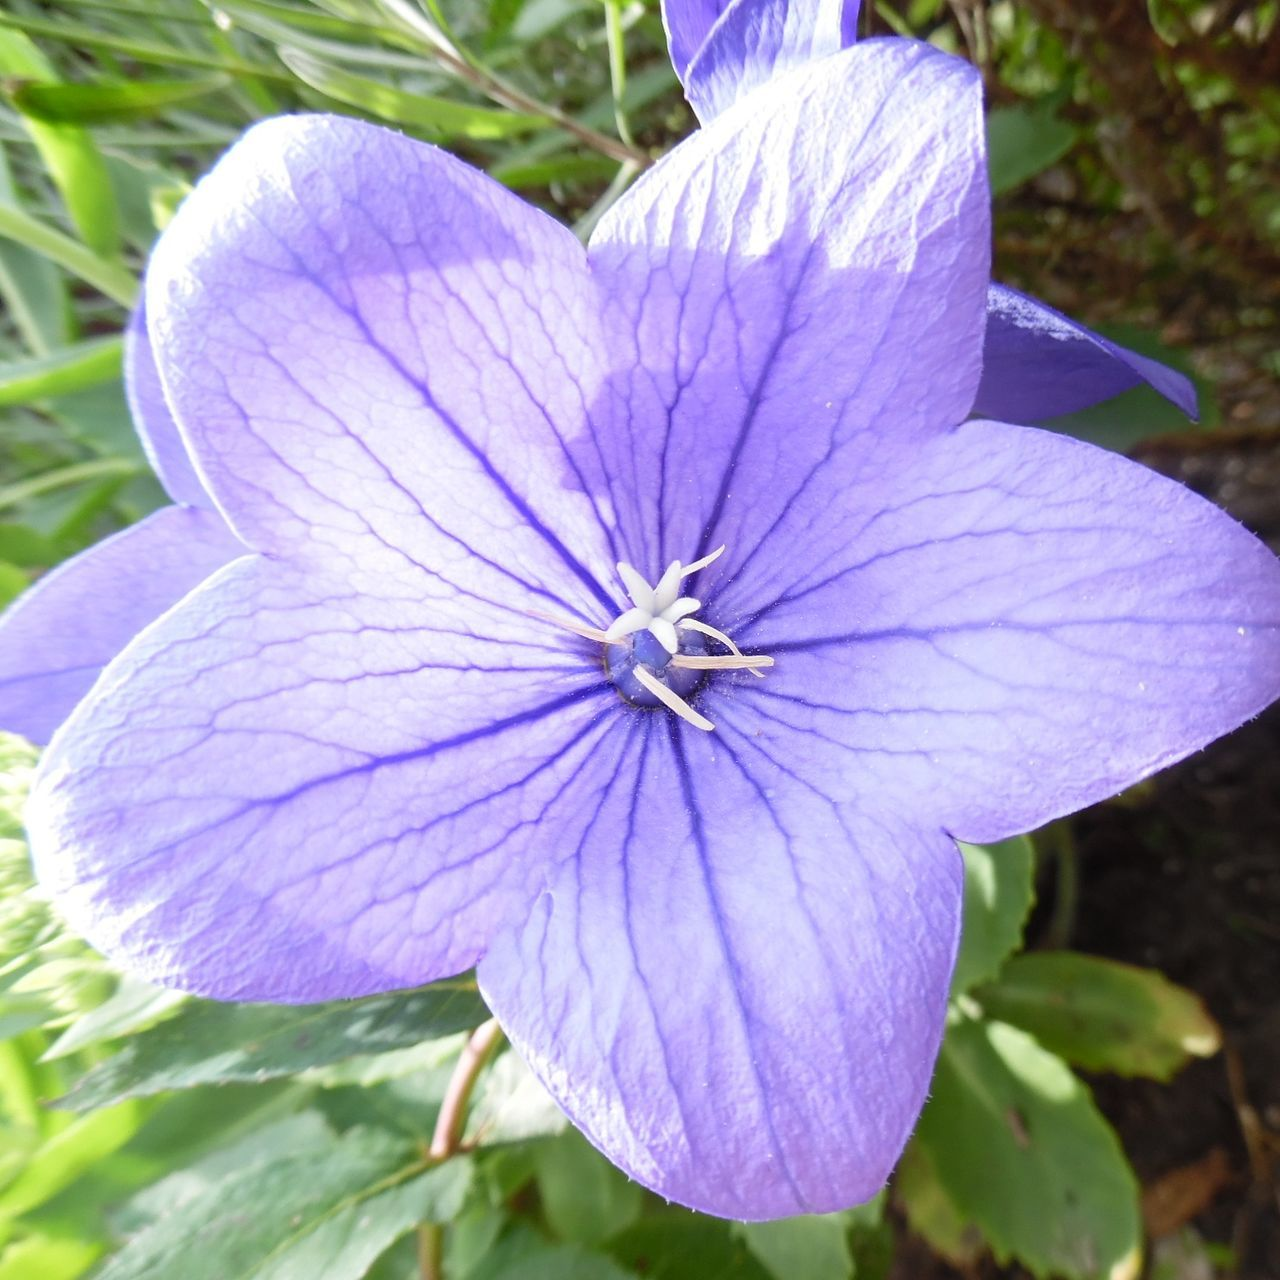 flower, petal, fragility, nature, growth, flower head, beauty in nature, freshness, plant, close-up, day, blooming, outdoors, purple, no people, petunia